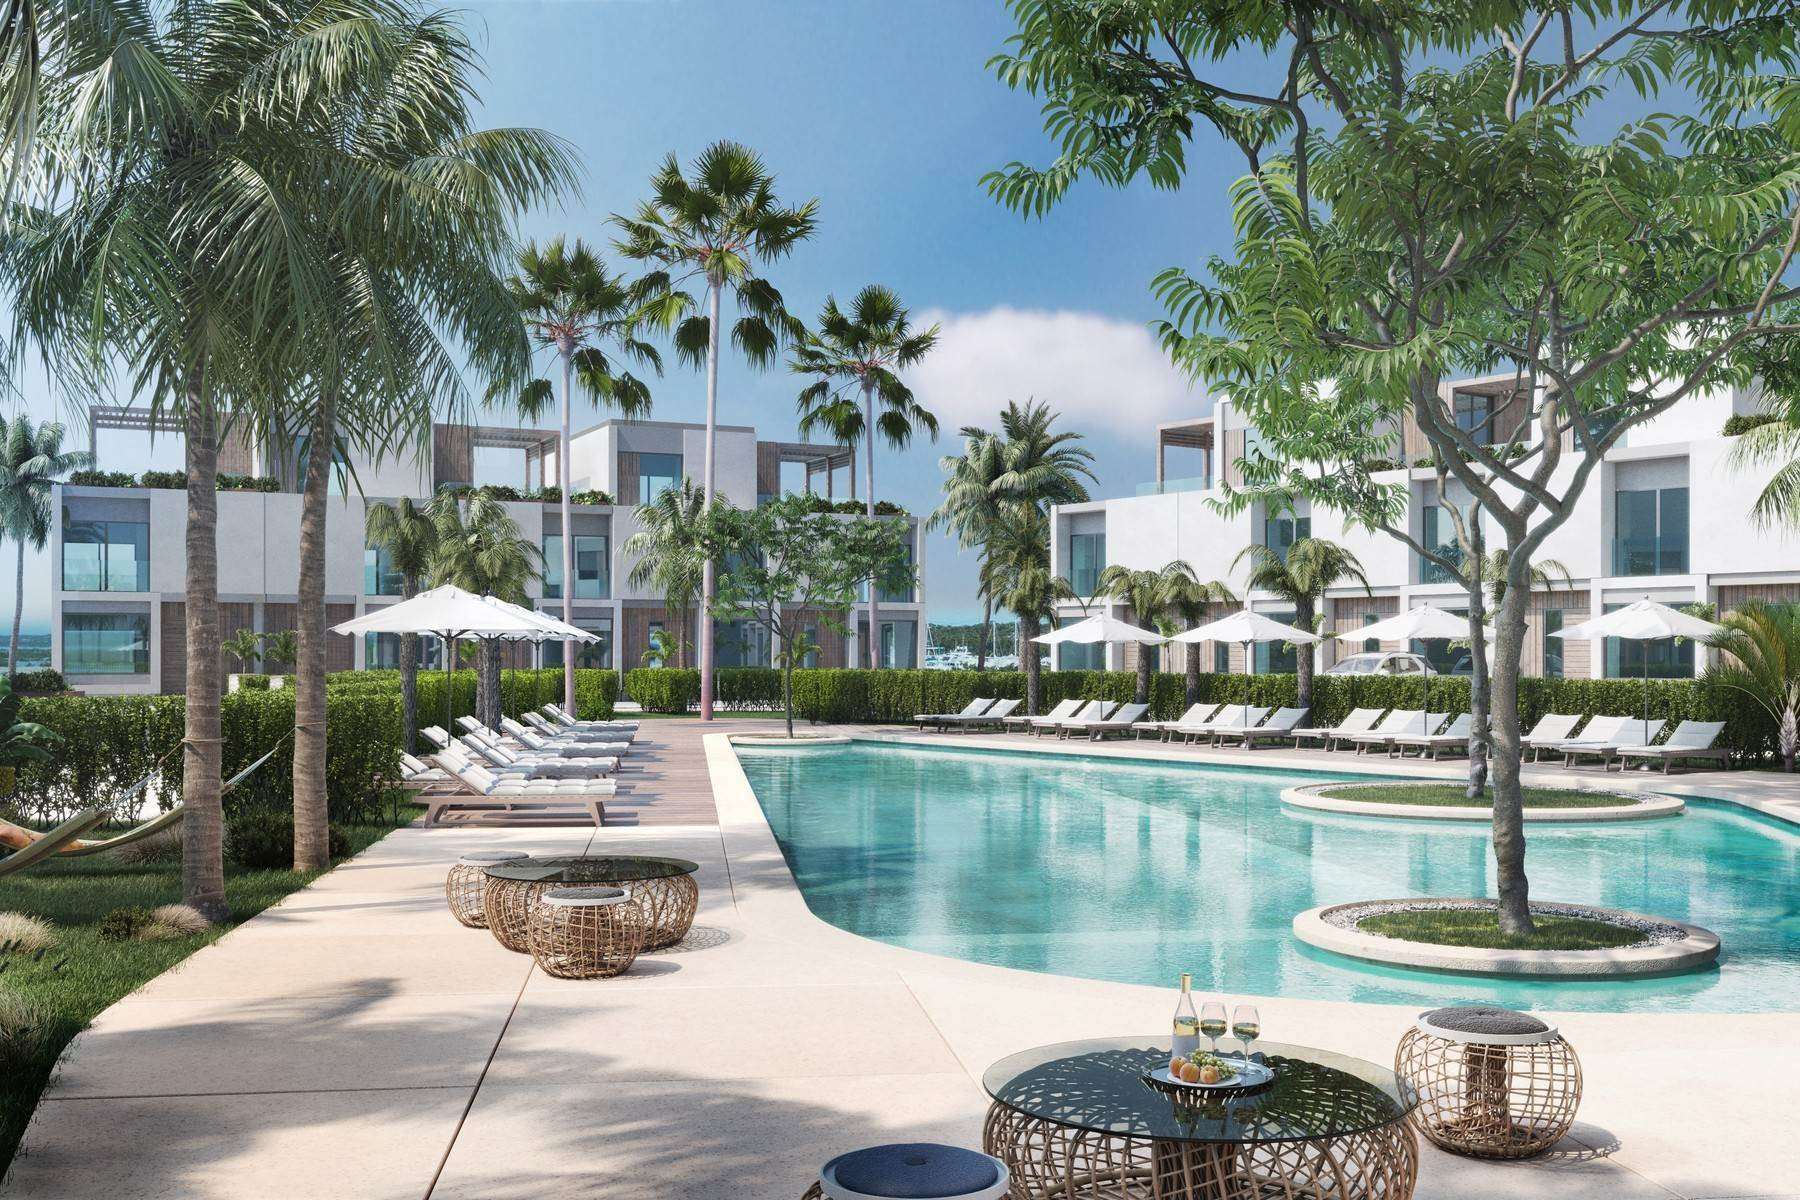 9. Condominiums for Sale at SOUTH BANK - BOATHOUSES - ONE BEDROOM - E7 South Bank, Long Bay, Providenciales Turks And Caicos Islands